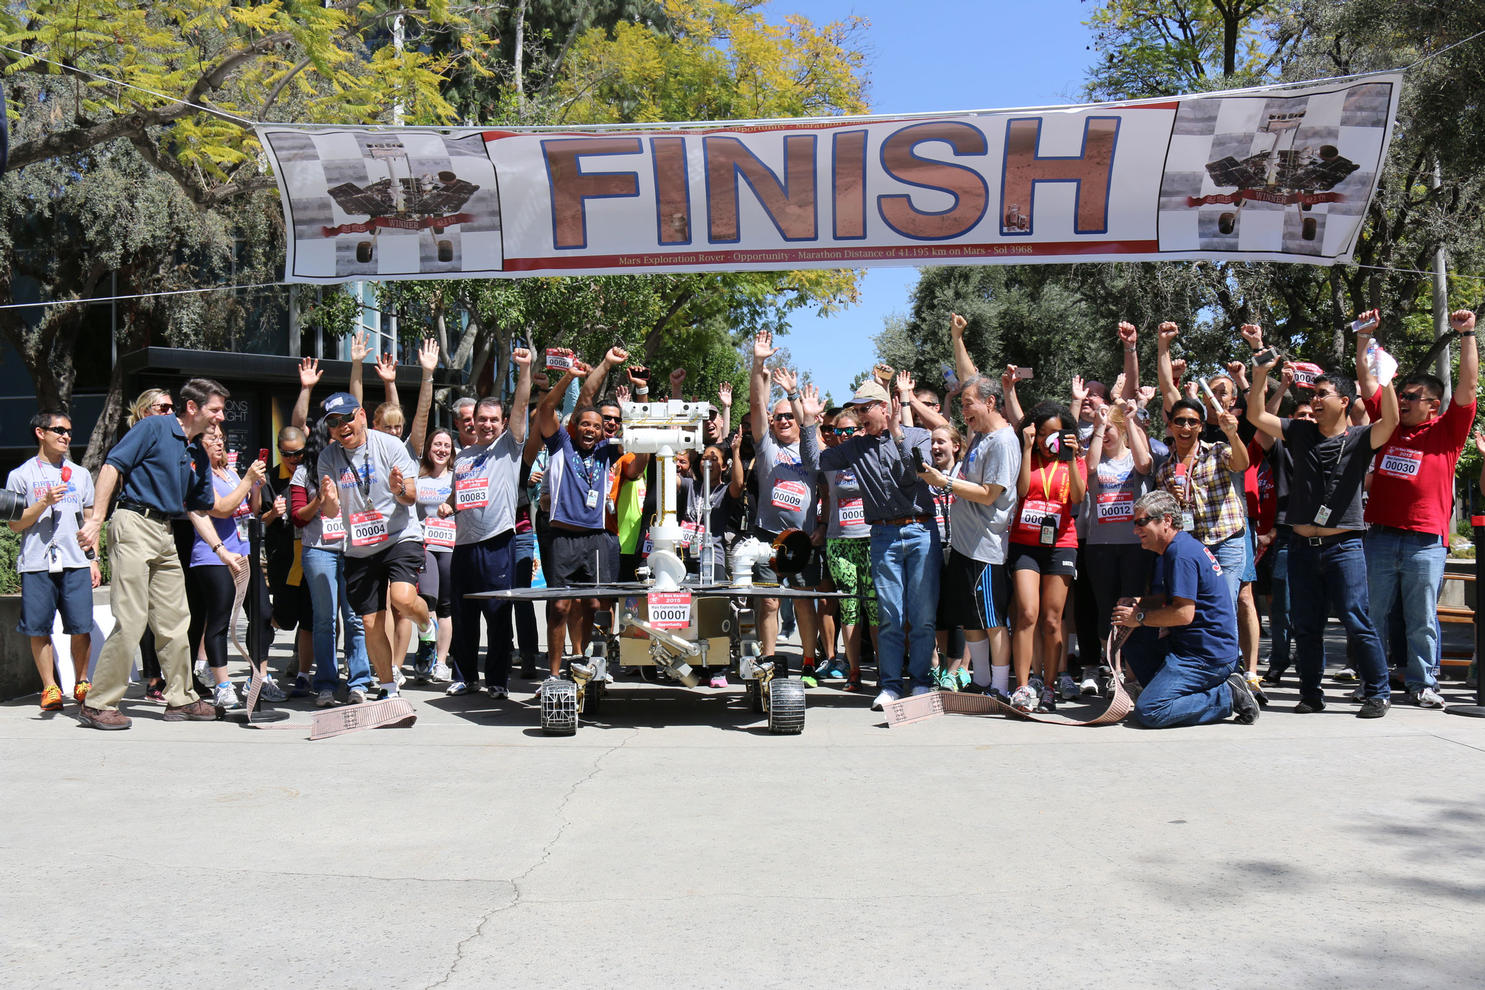 JPL employees show their support for the Opportunity rover's marathon-run on Mars, by running a marathon-length relay of their own on April 9, 2015.